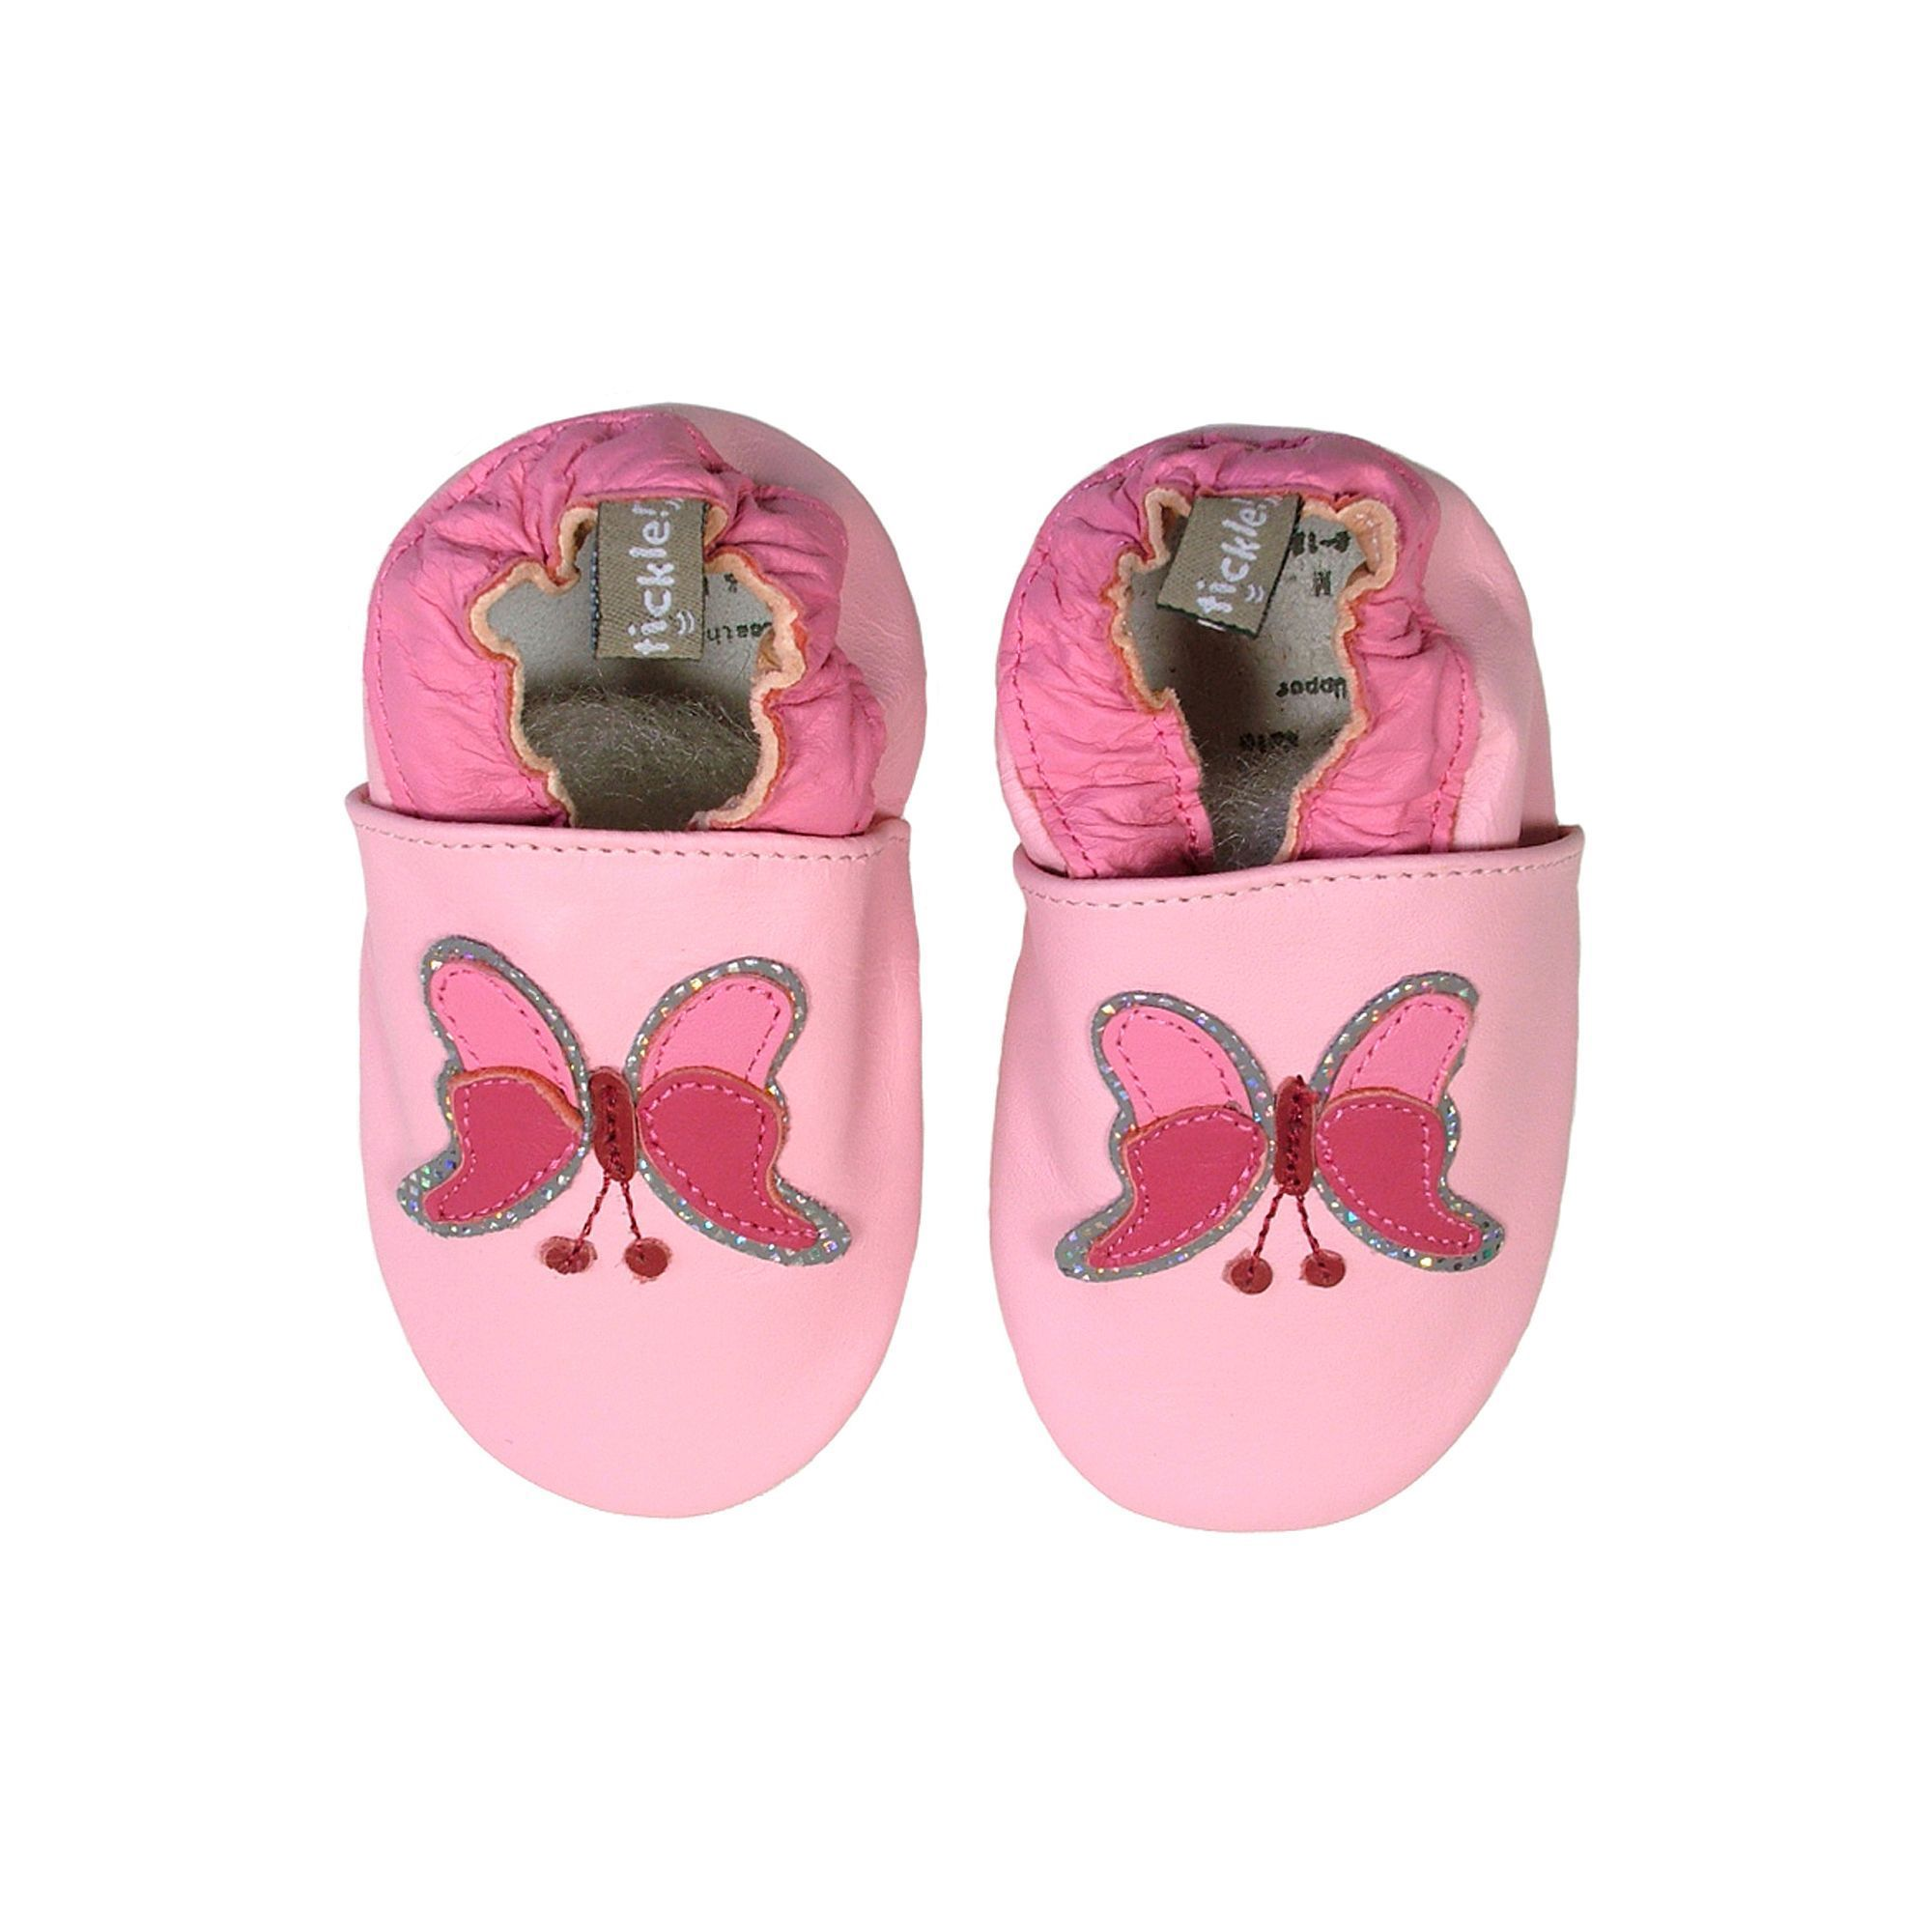 Tommy Tickle Butterfly Shoes Baby Infant Girl s Size 18 24MONTH